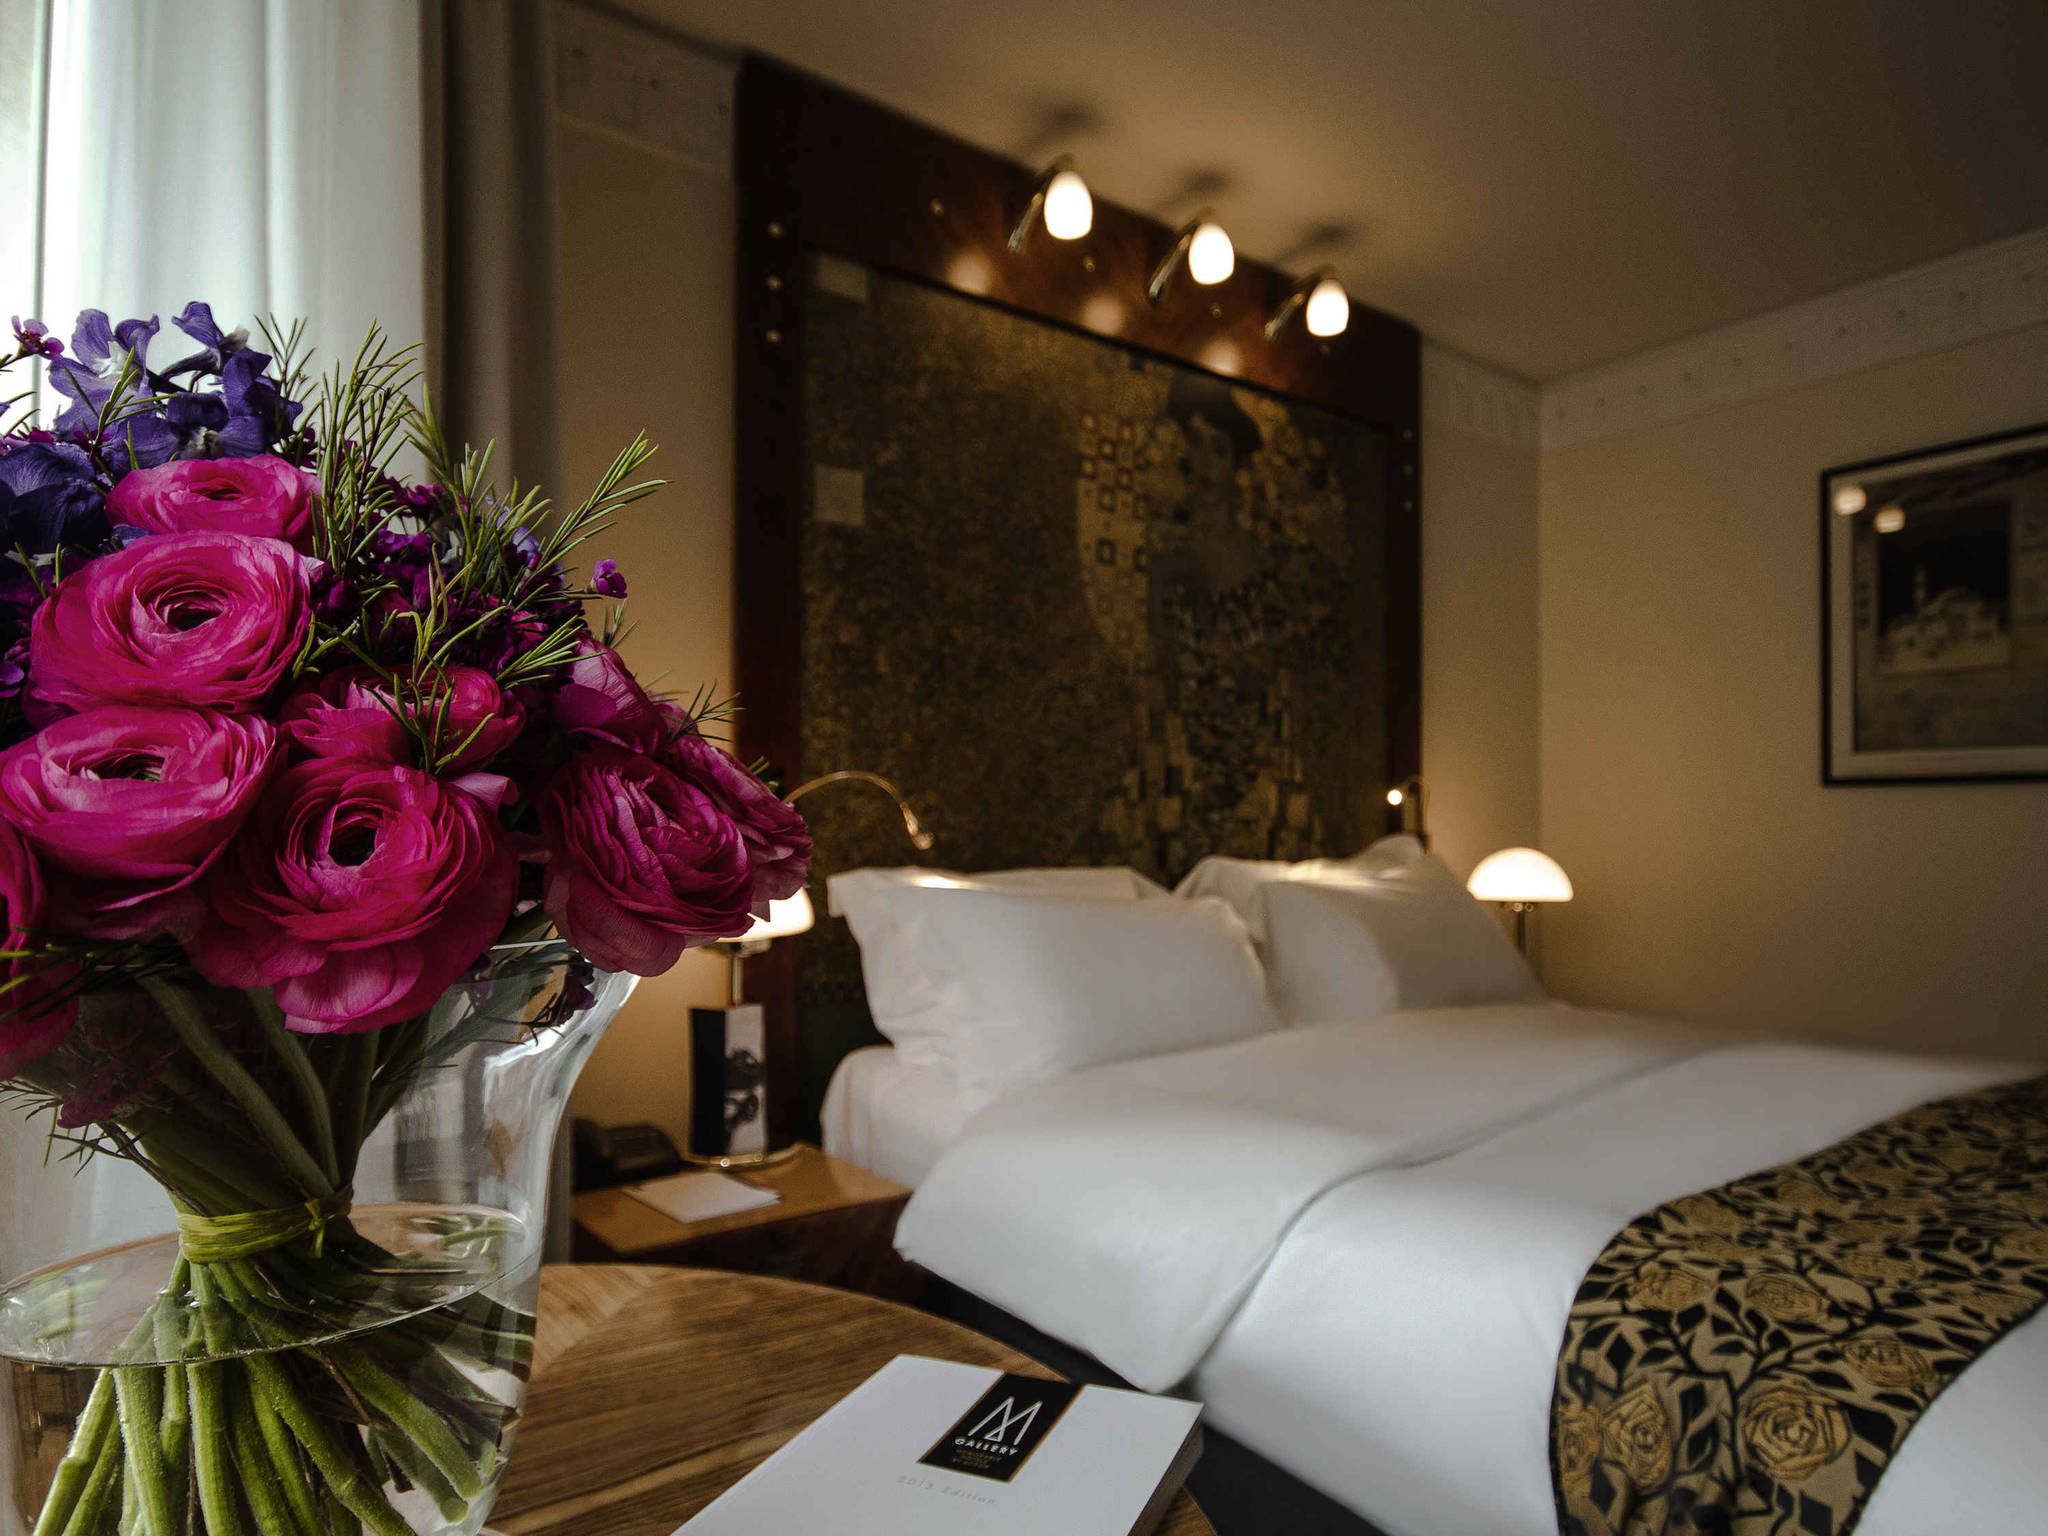 HOTEL AM KONZERTHAUS - MGALLERY COLLECTION-1276